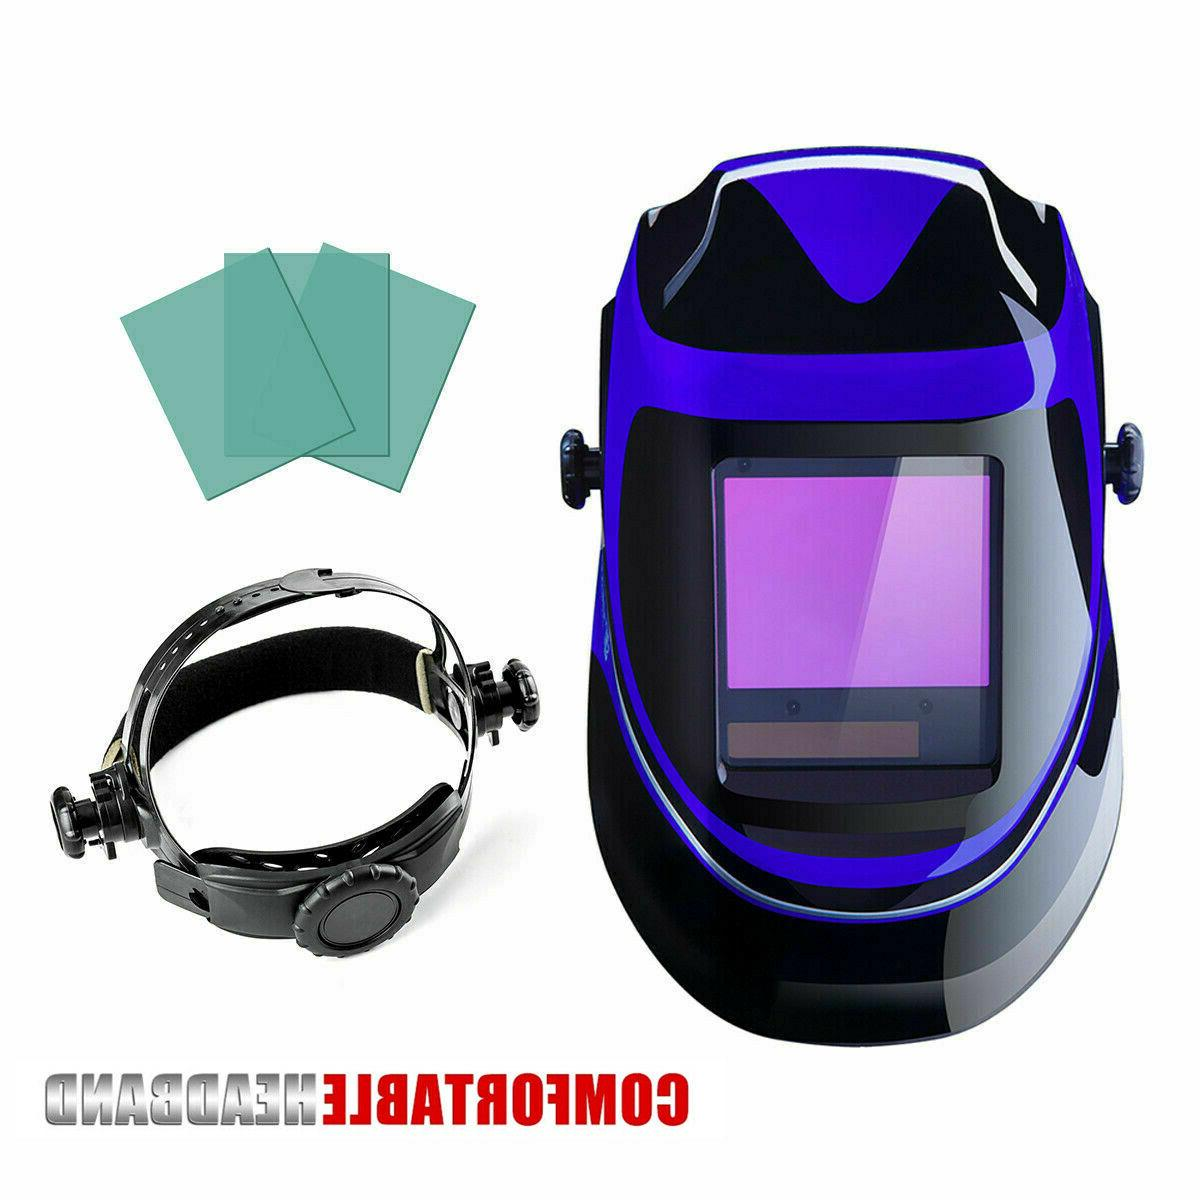 DEKO Solar Auto Darkening MIG MMA Electric Welding Helmet We